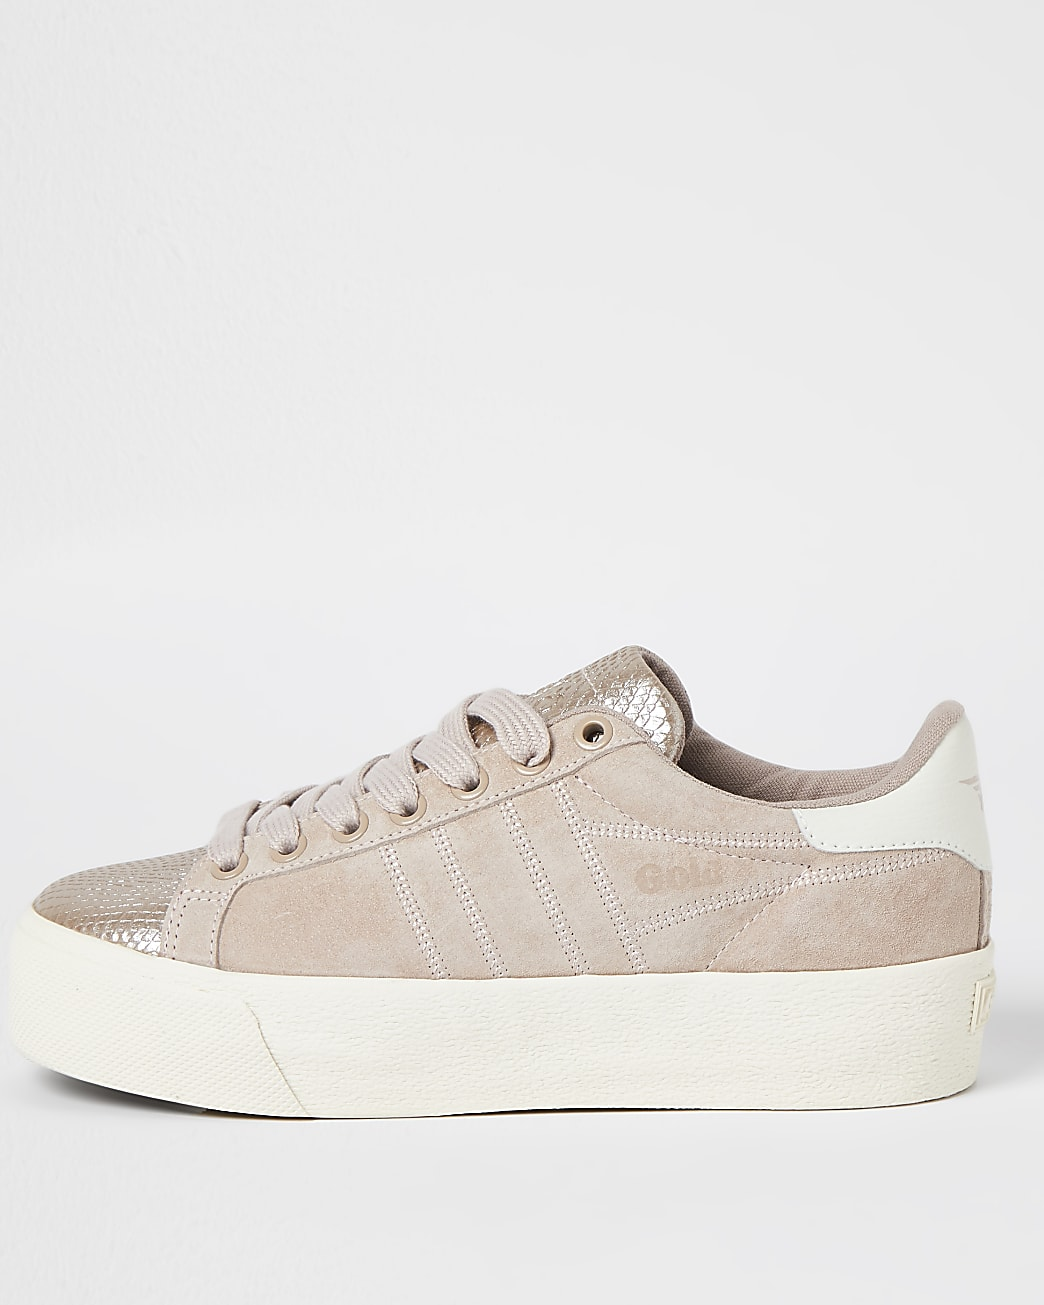 Gola pink lace up trainers